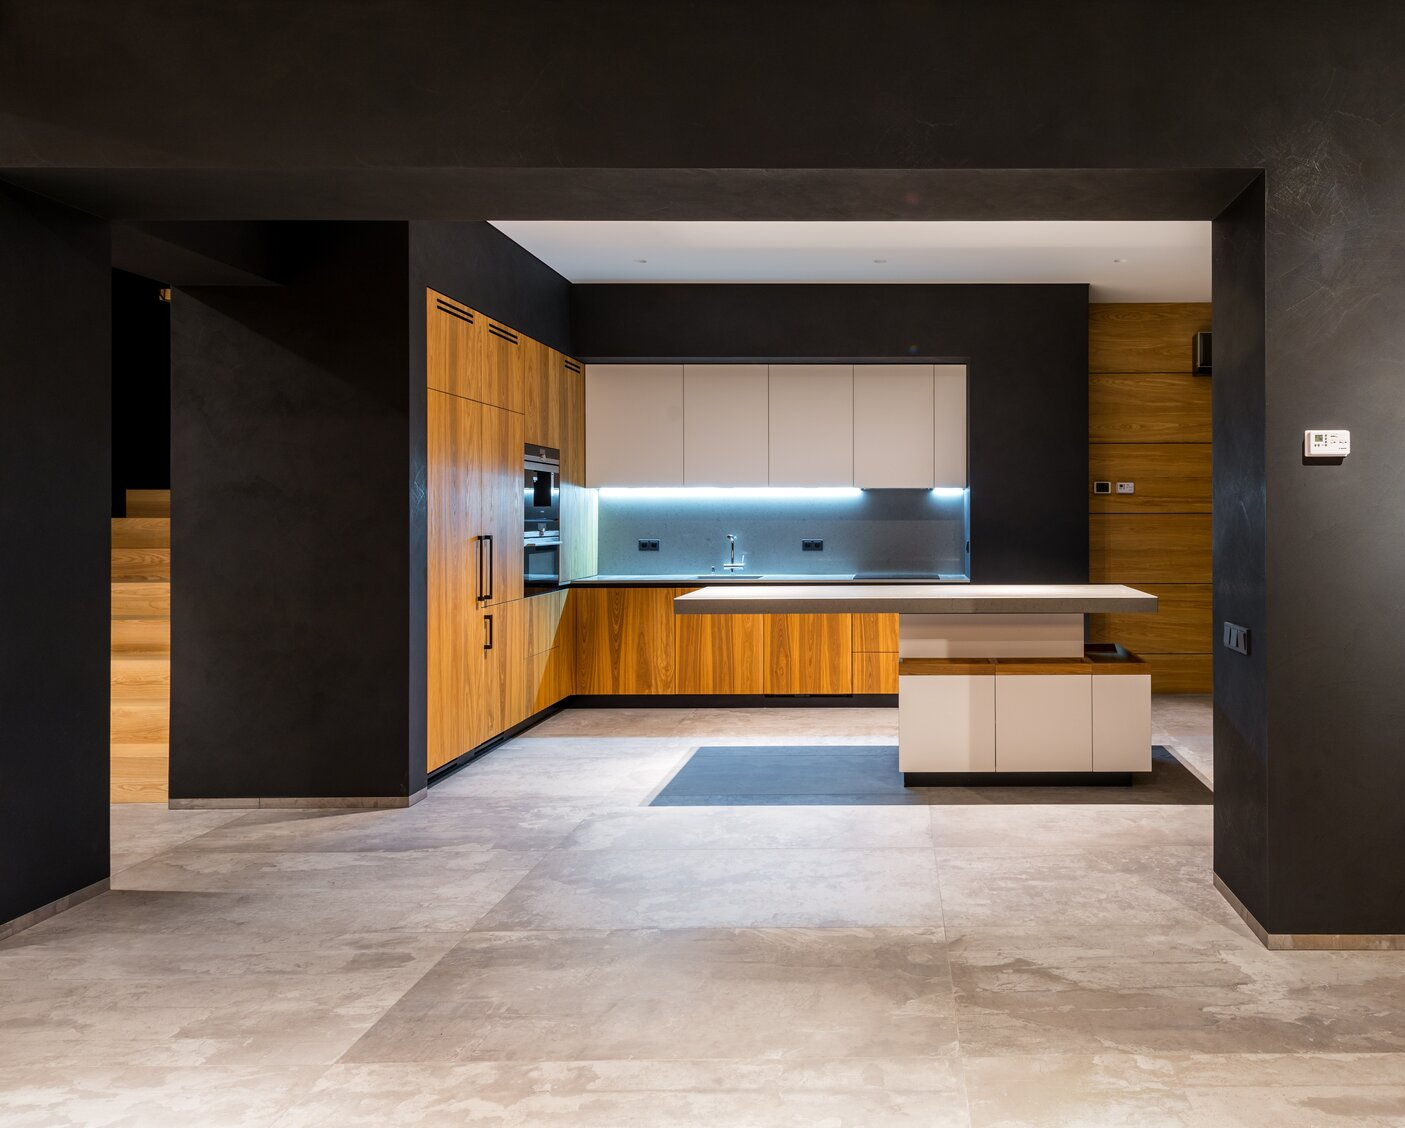 3 Most Innovative and Sustainable Materials for Your Luxury Home